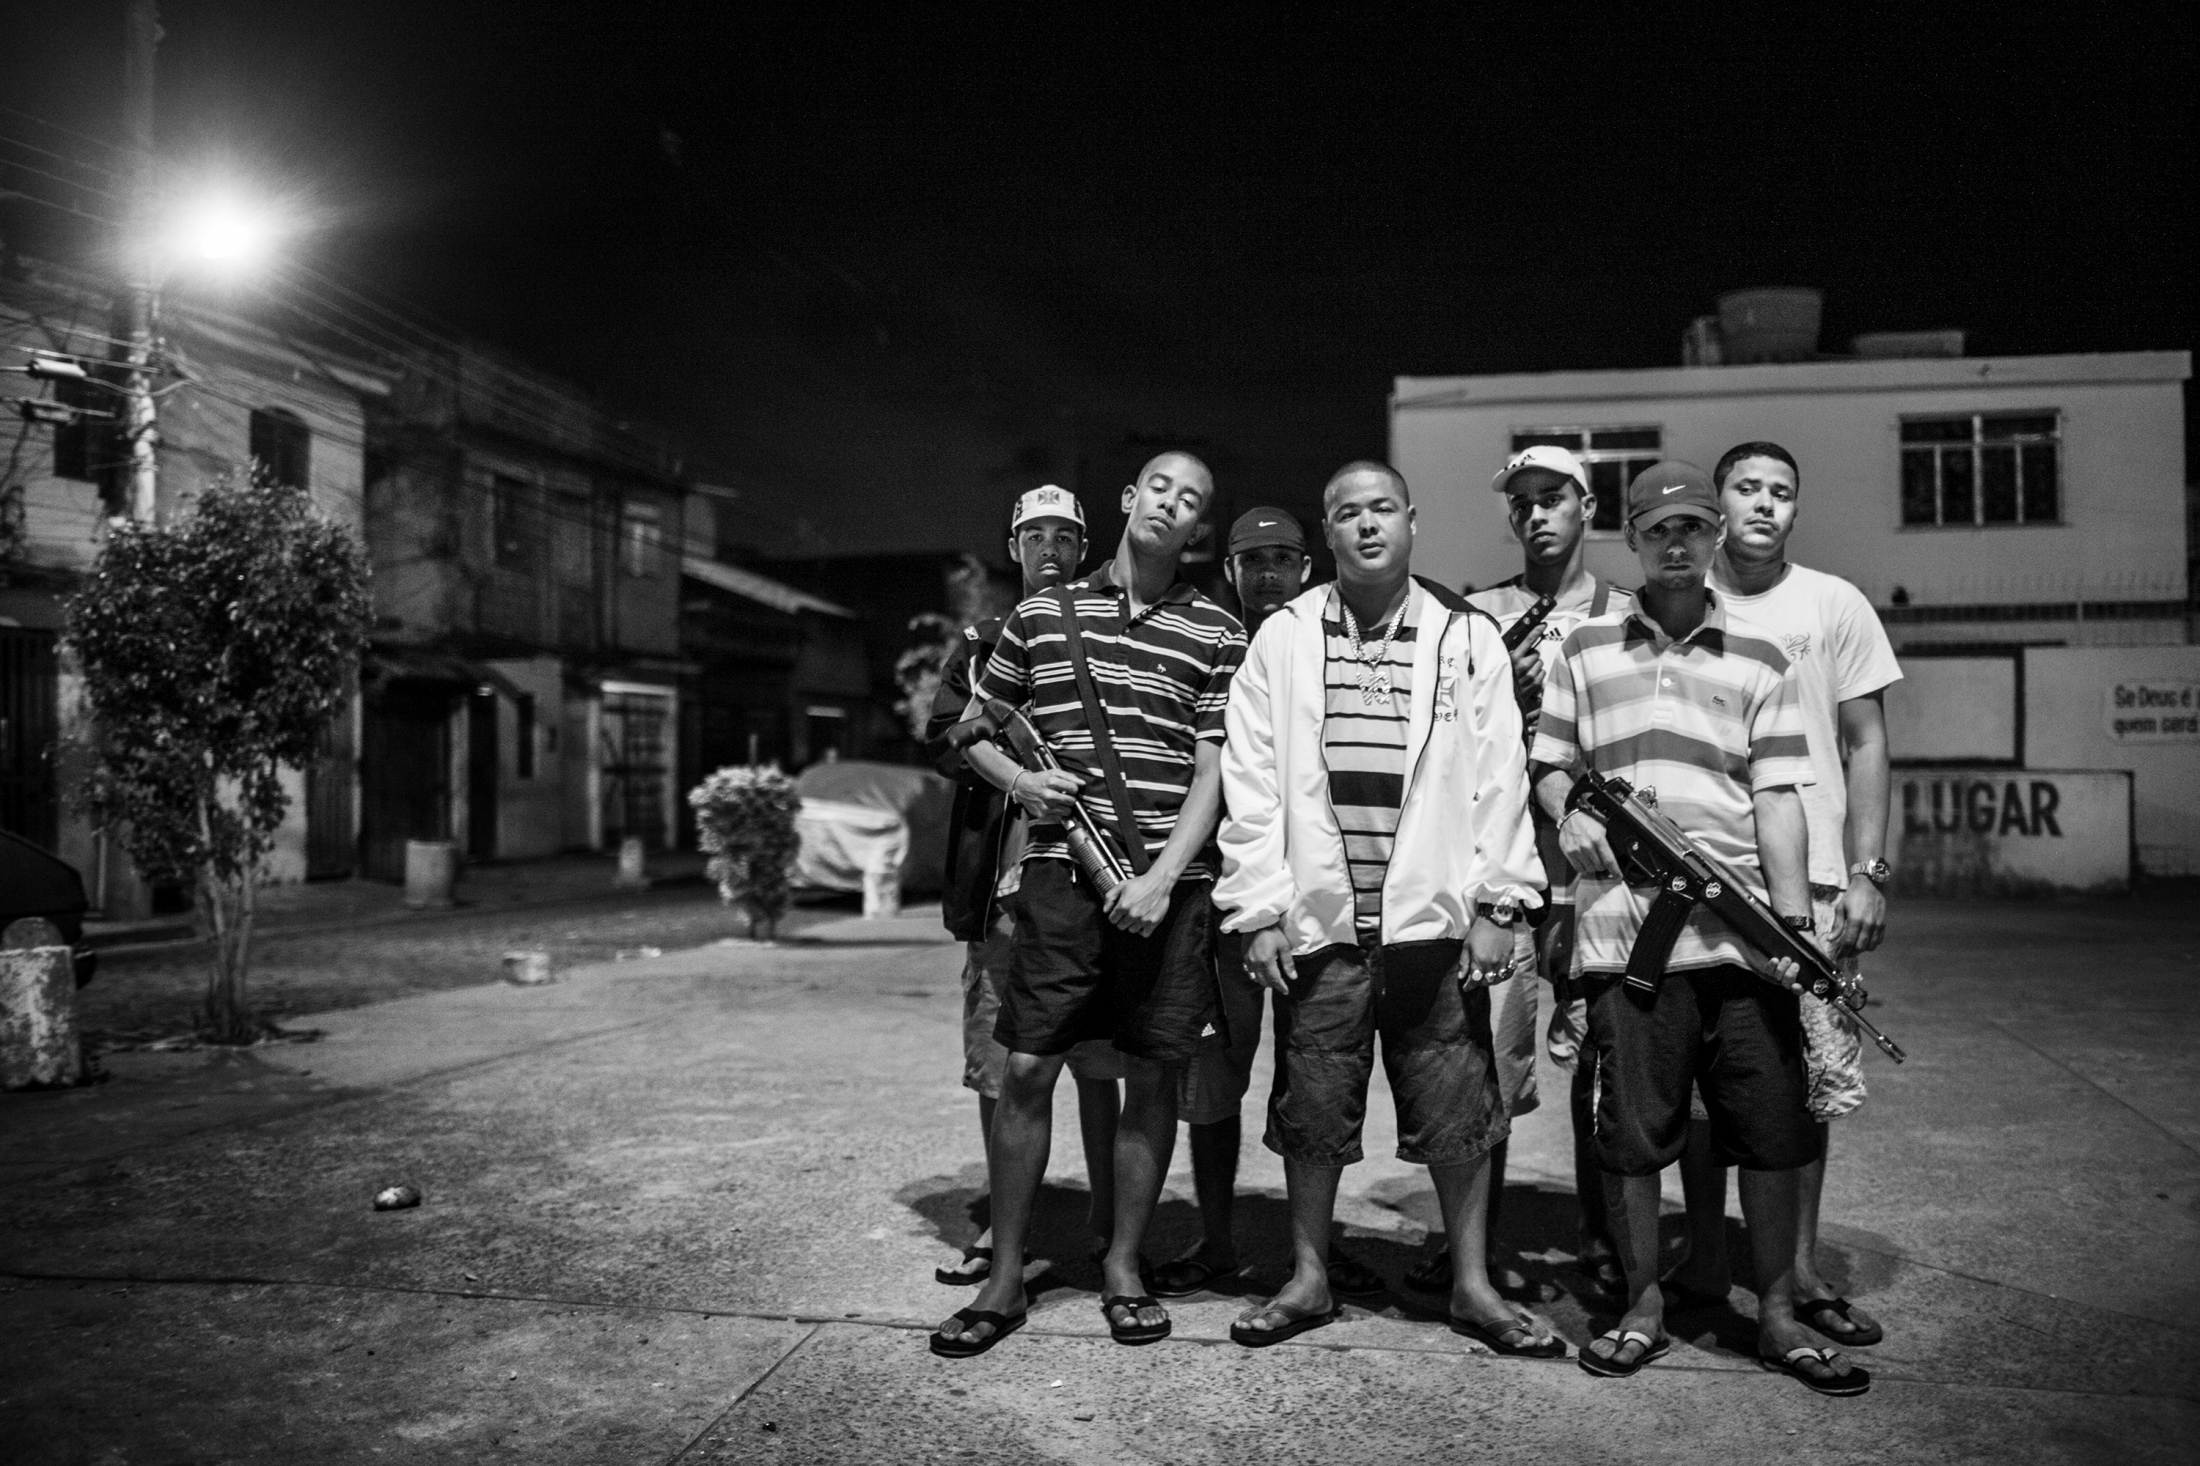 """Young people who belong to the """"Third Command"""" gang pose for a group portrait inside the Parque Royal favela on Governor's island in northern Rio de Janeiro. The man in the middle in a white coat is """"Vesguinho"""" the leader of the group. He was later killed by the military police in June 2009. July 2008."""